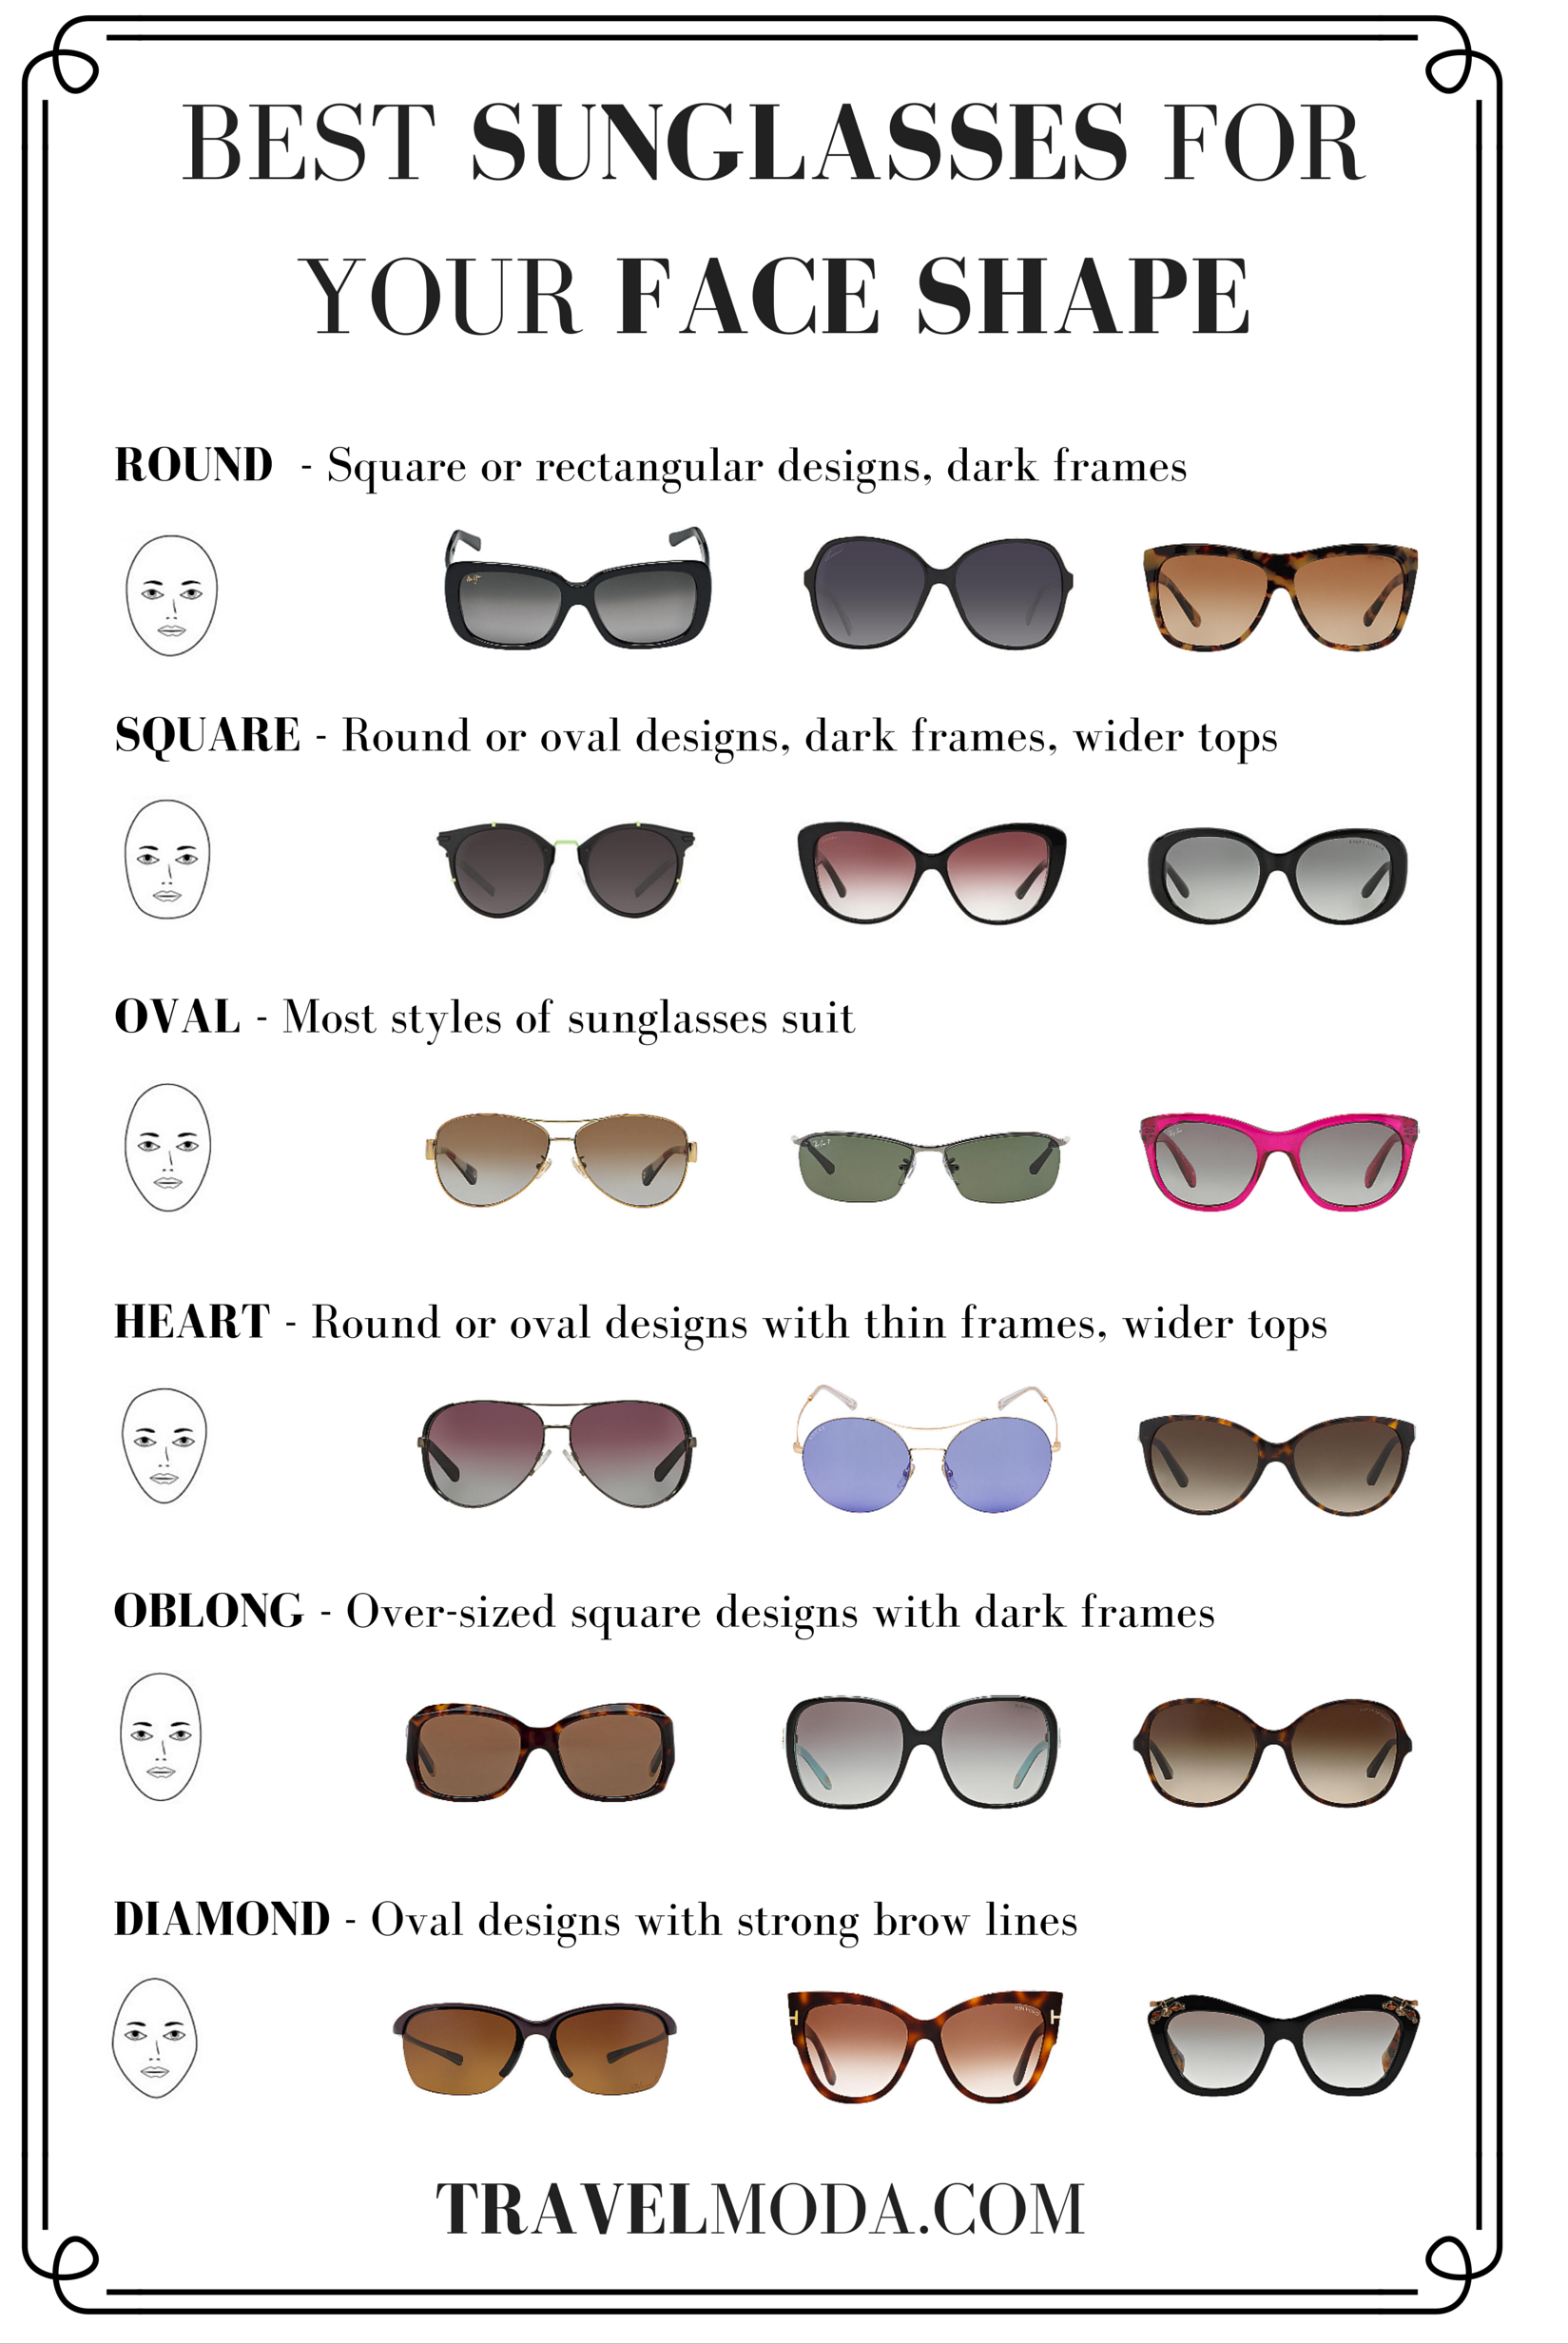 35d5caae79 best sunglasses for your face shape - infographic